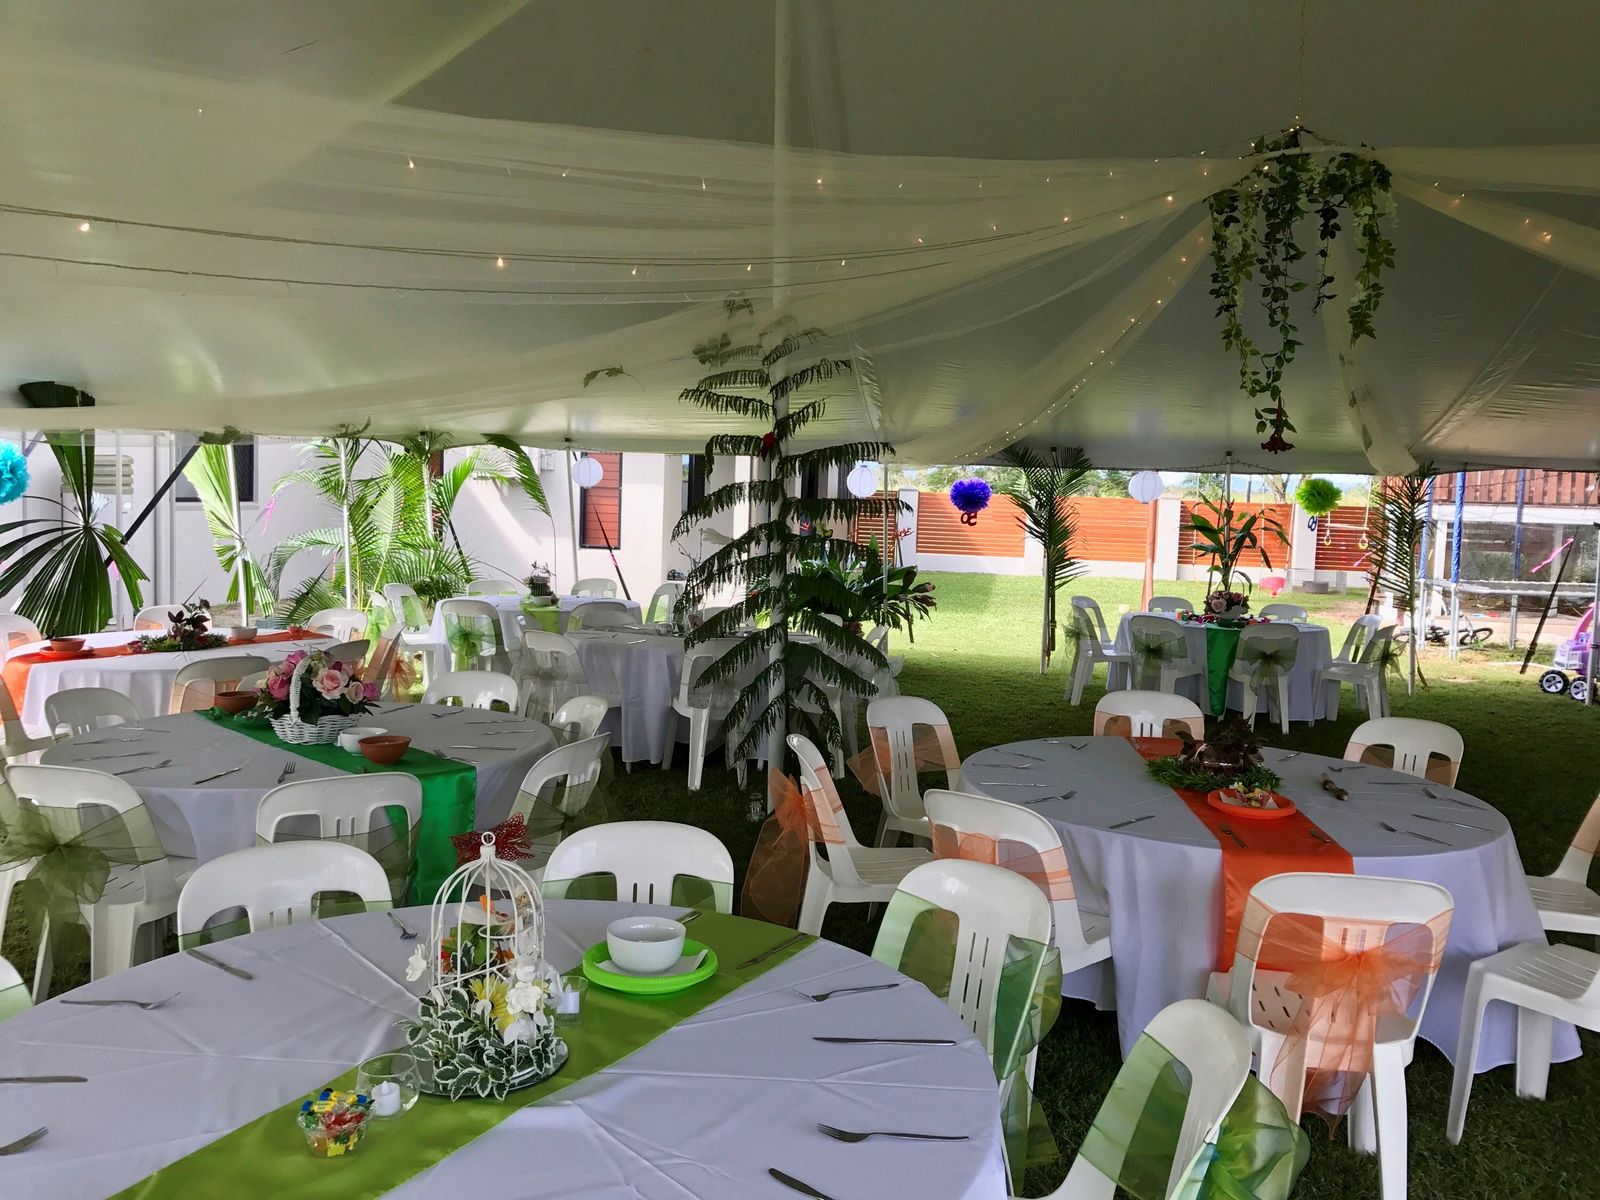 CREATIVE  EVENTS, Innisfail, QLD 4860